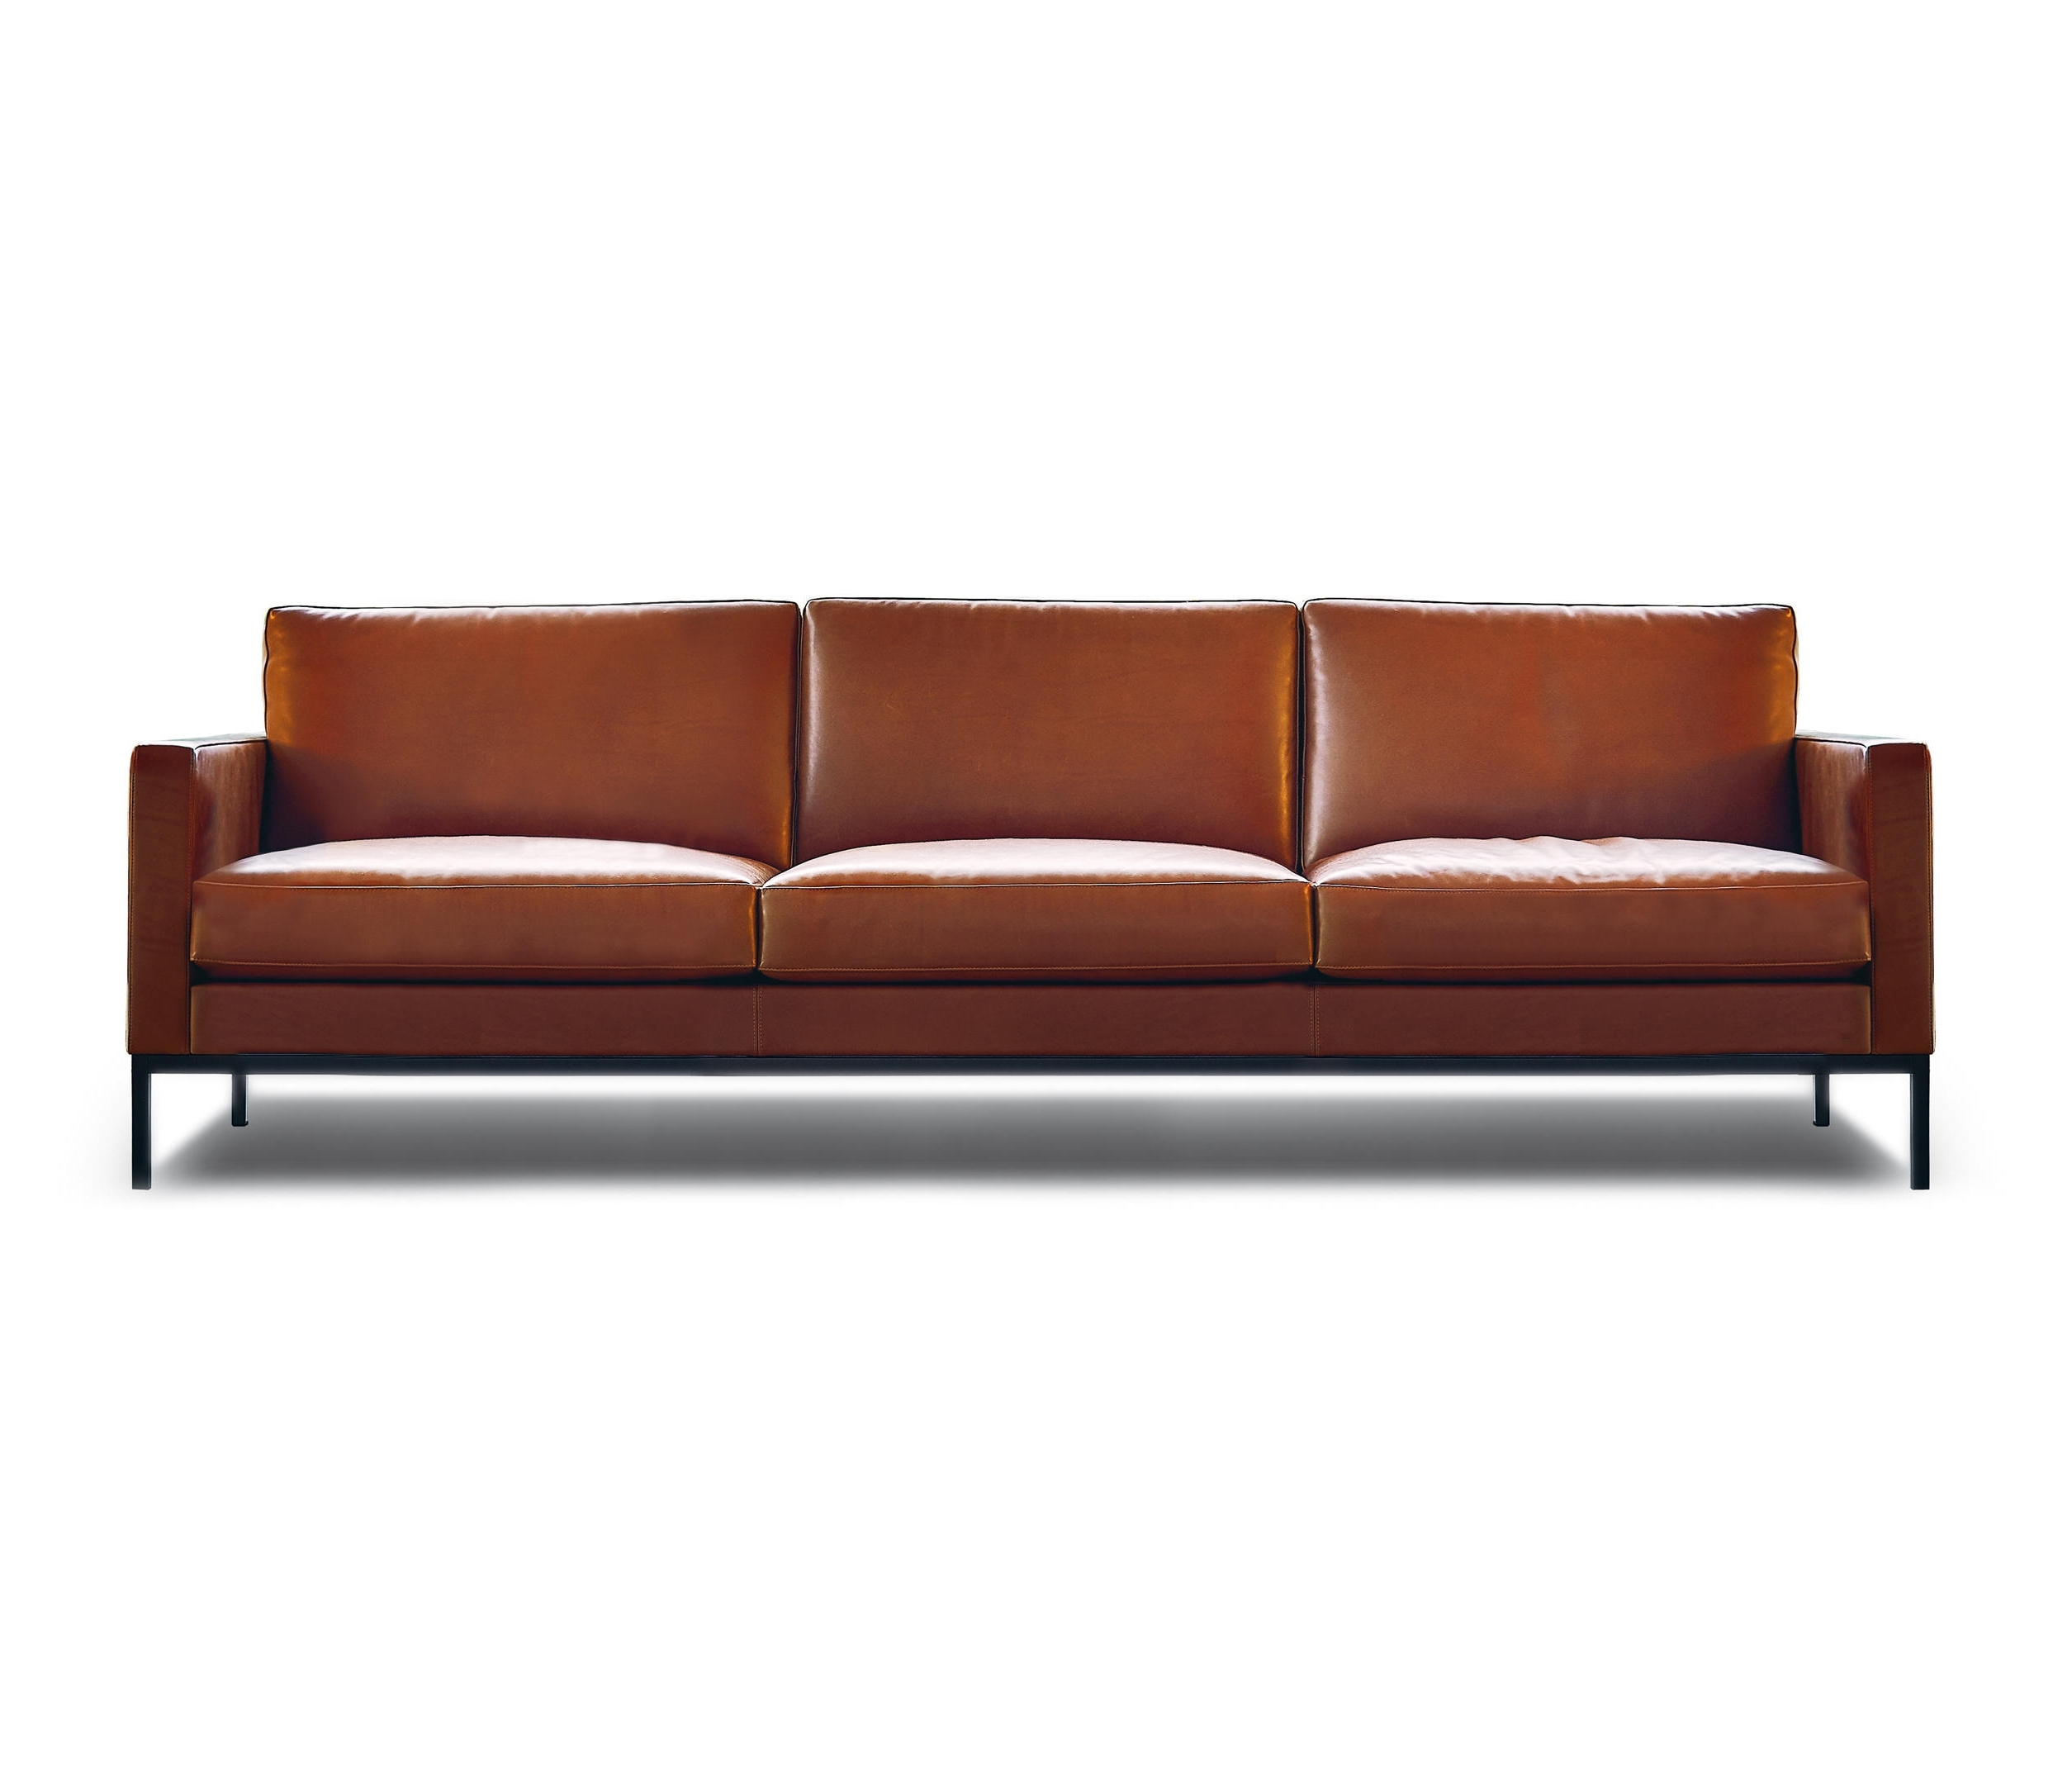 Current Florence Knoll Lounge 3 Seat Sofa – Lounge Sofas From Knoll With Regard To Florence Sofas (View 4 of 15)